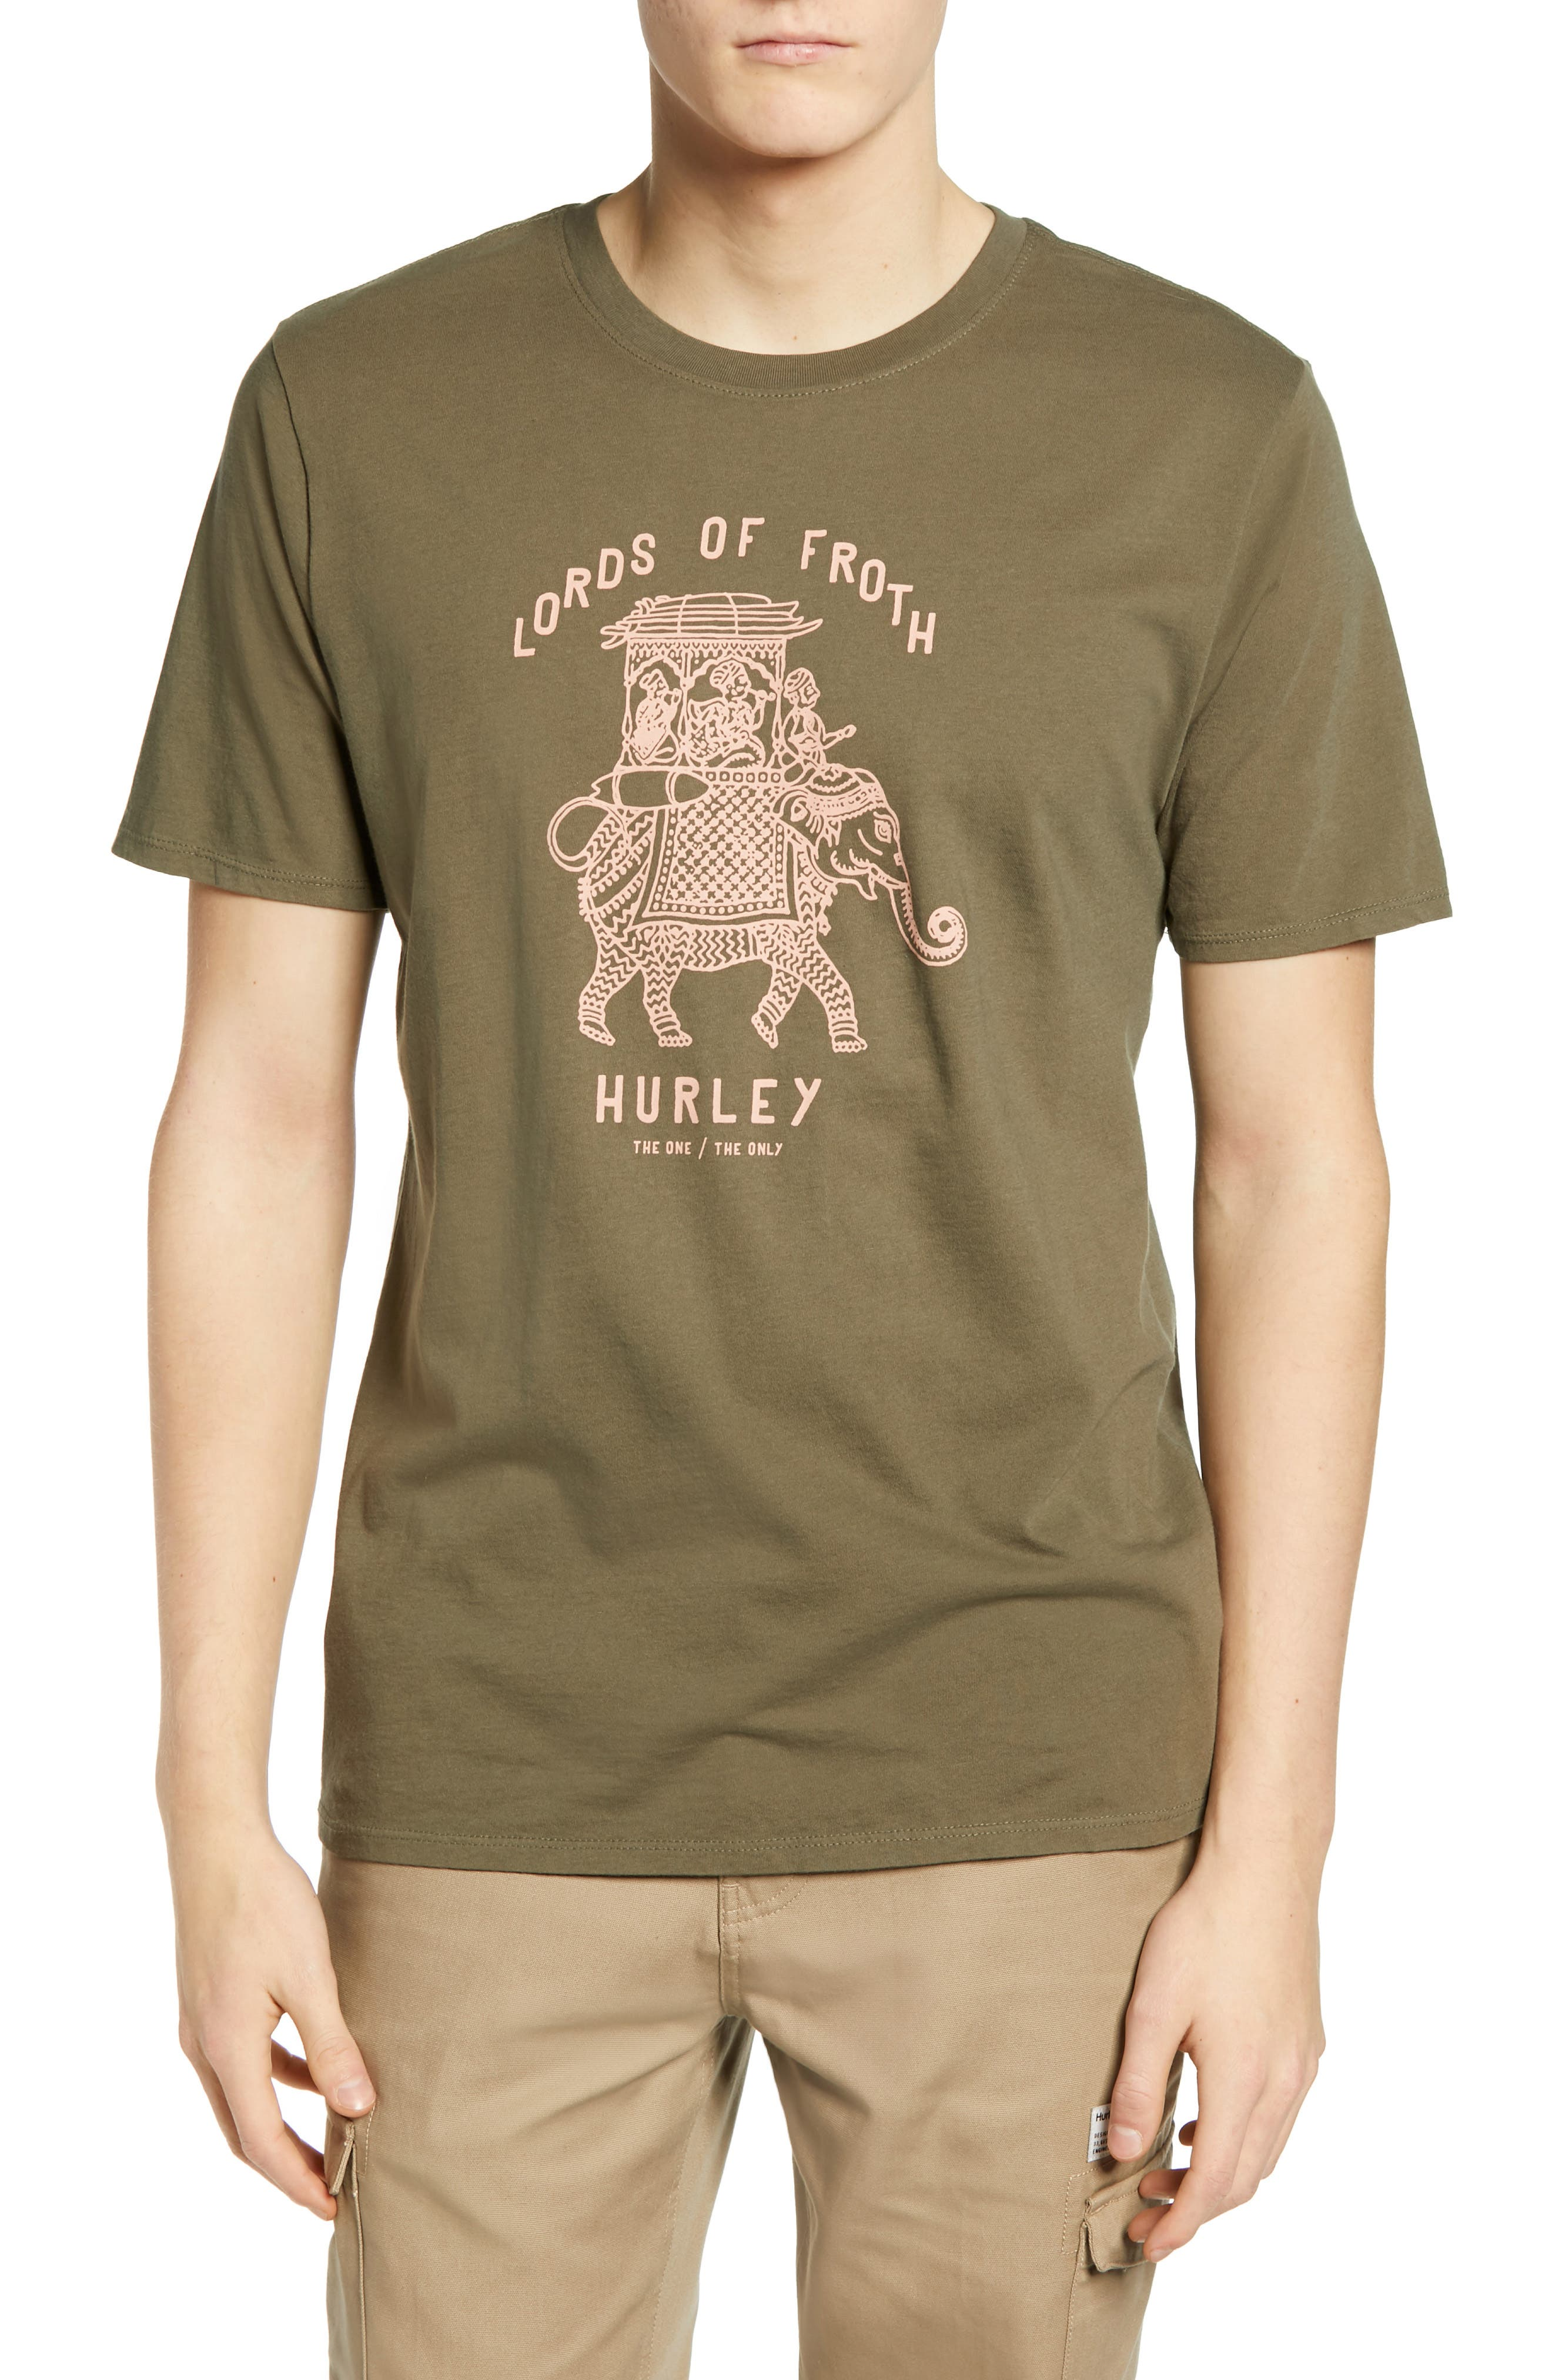 HURLEY Lords Of Froth Graphic T-Shirt in Twilight Marsh